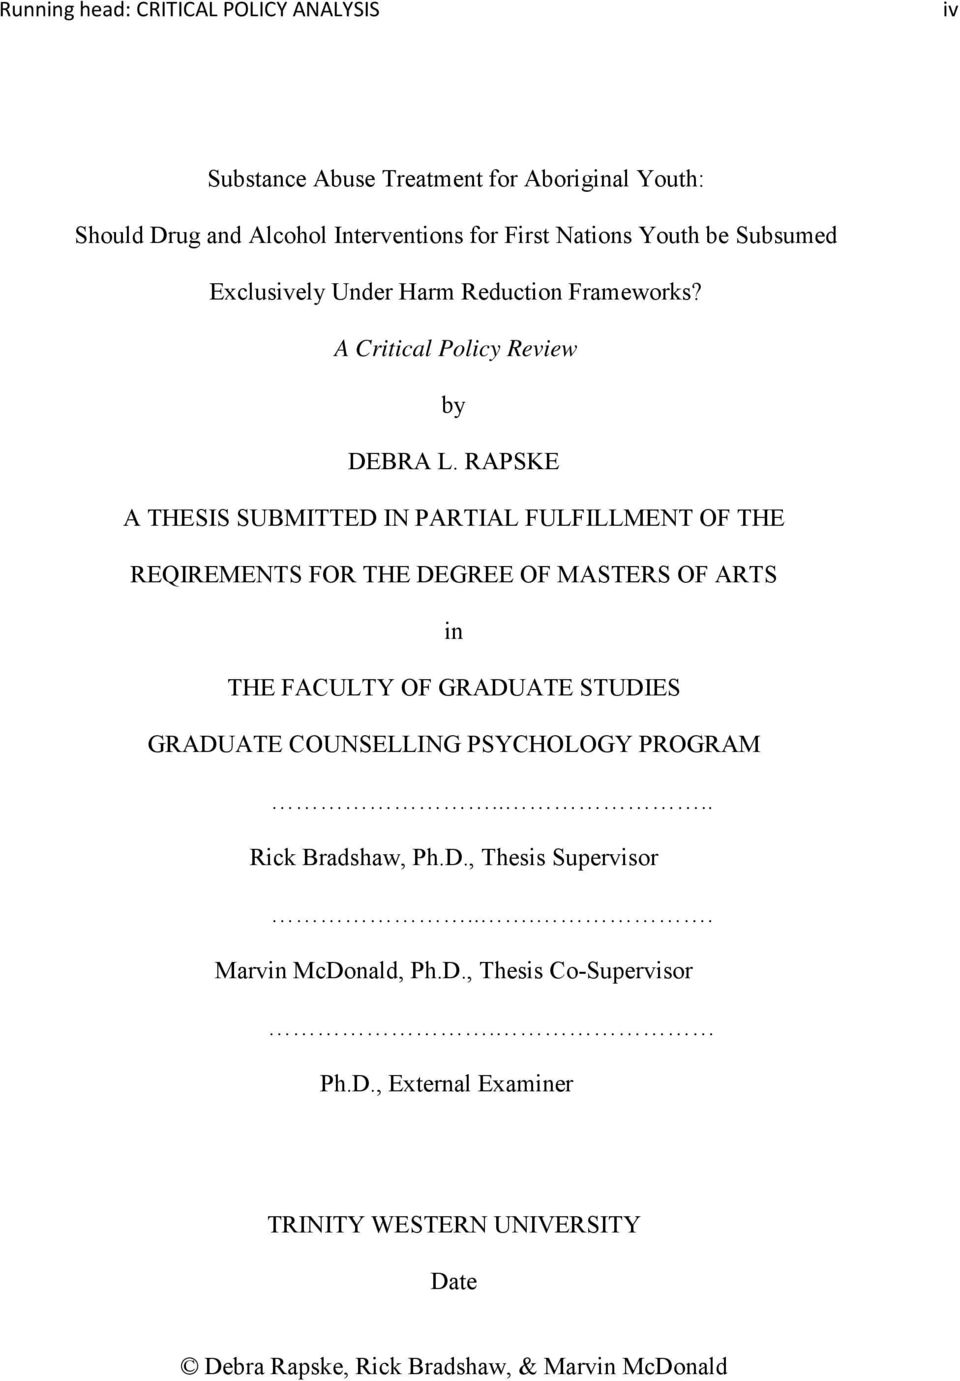 RAPSKE A THESIS SUBMITTED IN PARTIAL FULFILLMENT OF THE REQIREMENTS FOR THE DEGREE OF MASTERS OF ARTS in THE FACULTY OF GRADUATE STUDIES GRADUATE